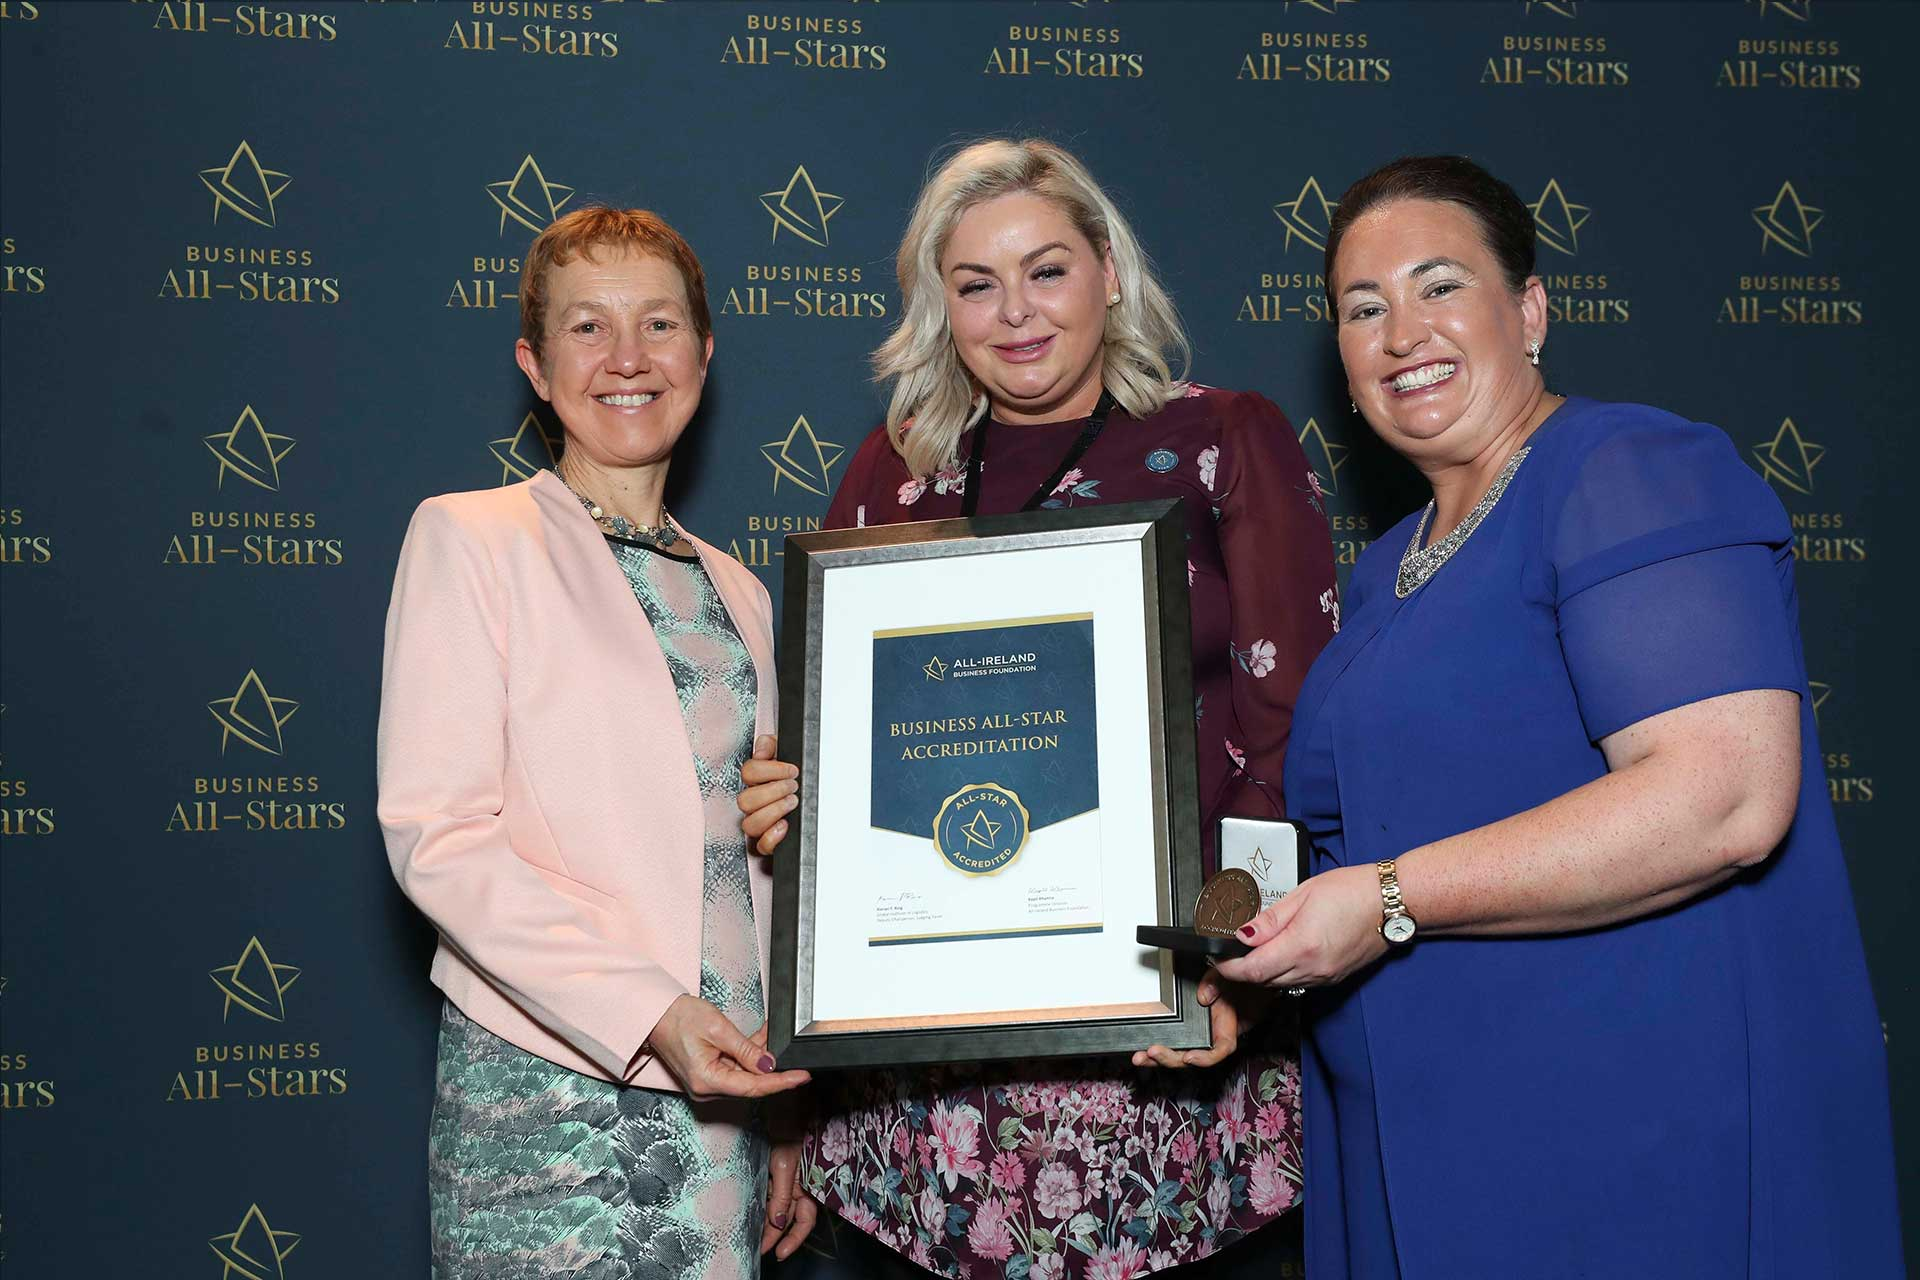 Michelle Furey Lawlor- Jejuve Aesthetics receiving Business All-Star Accreditation at Croke Park from Dr Briga Hynes, Kemmy Business School, University of Limerick and Elaine Carroll CEO, All-Ireland Business Foundation.